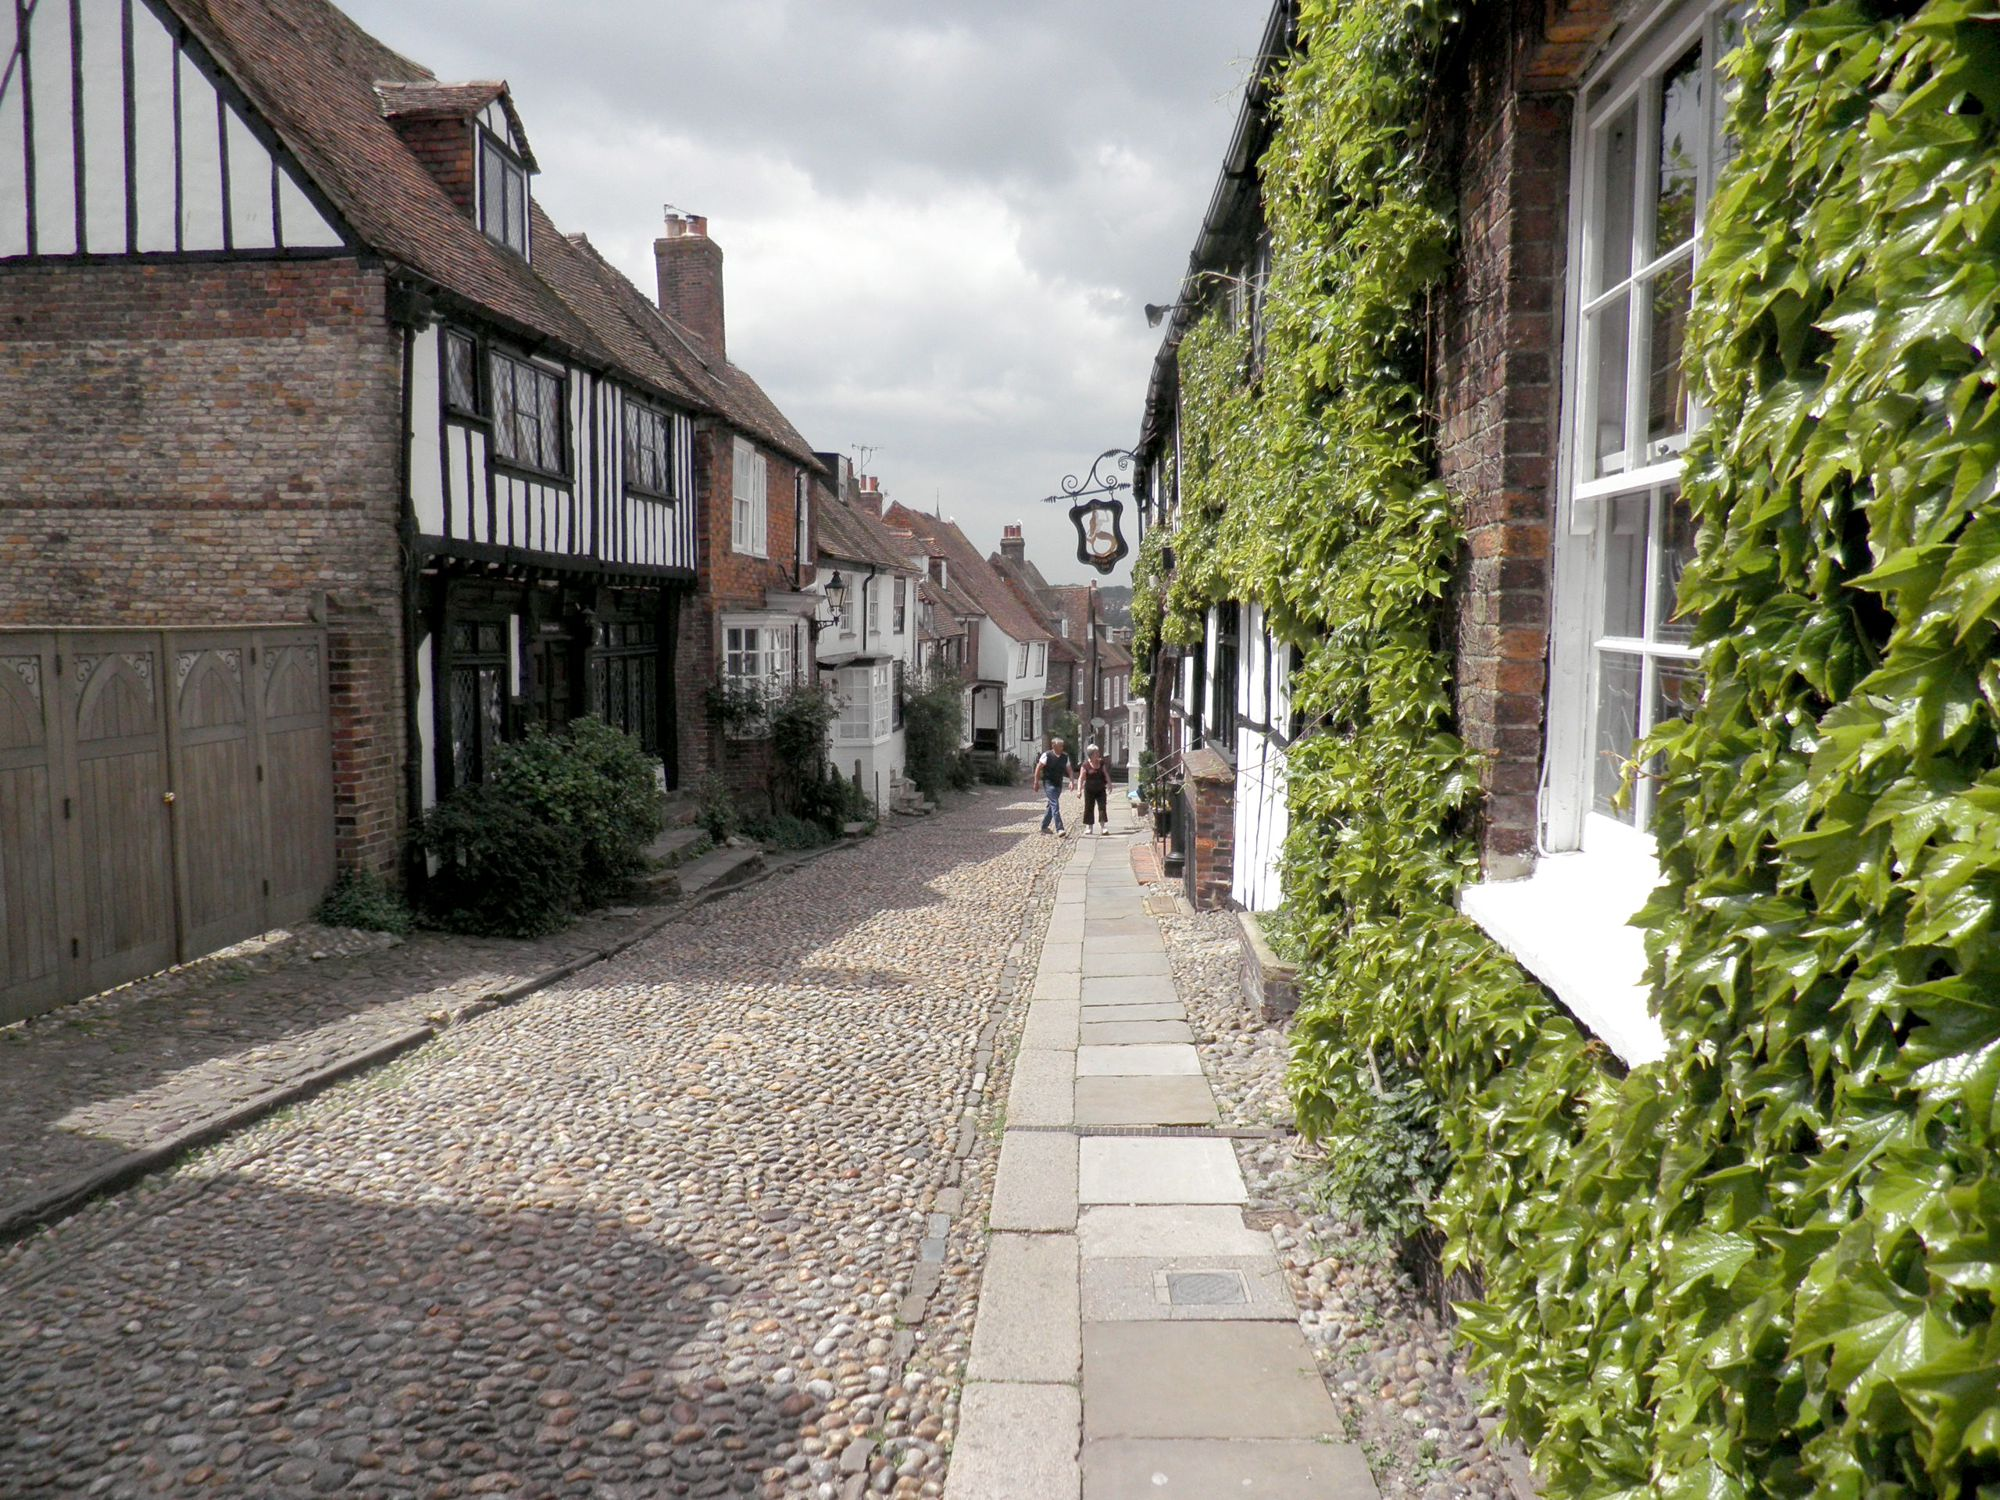 Hotels, B&Bs & Self-Catering in Rye